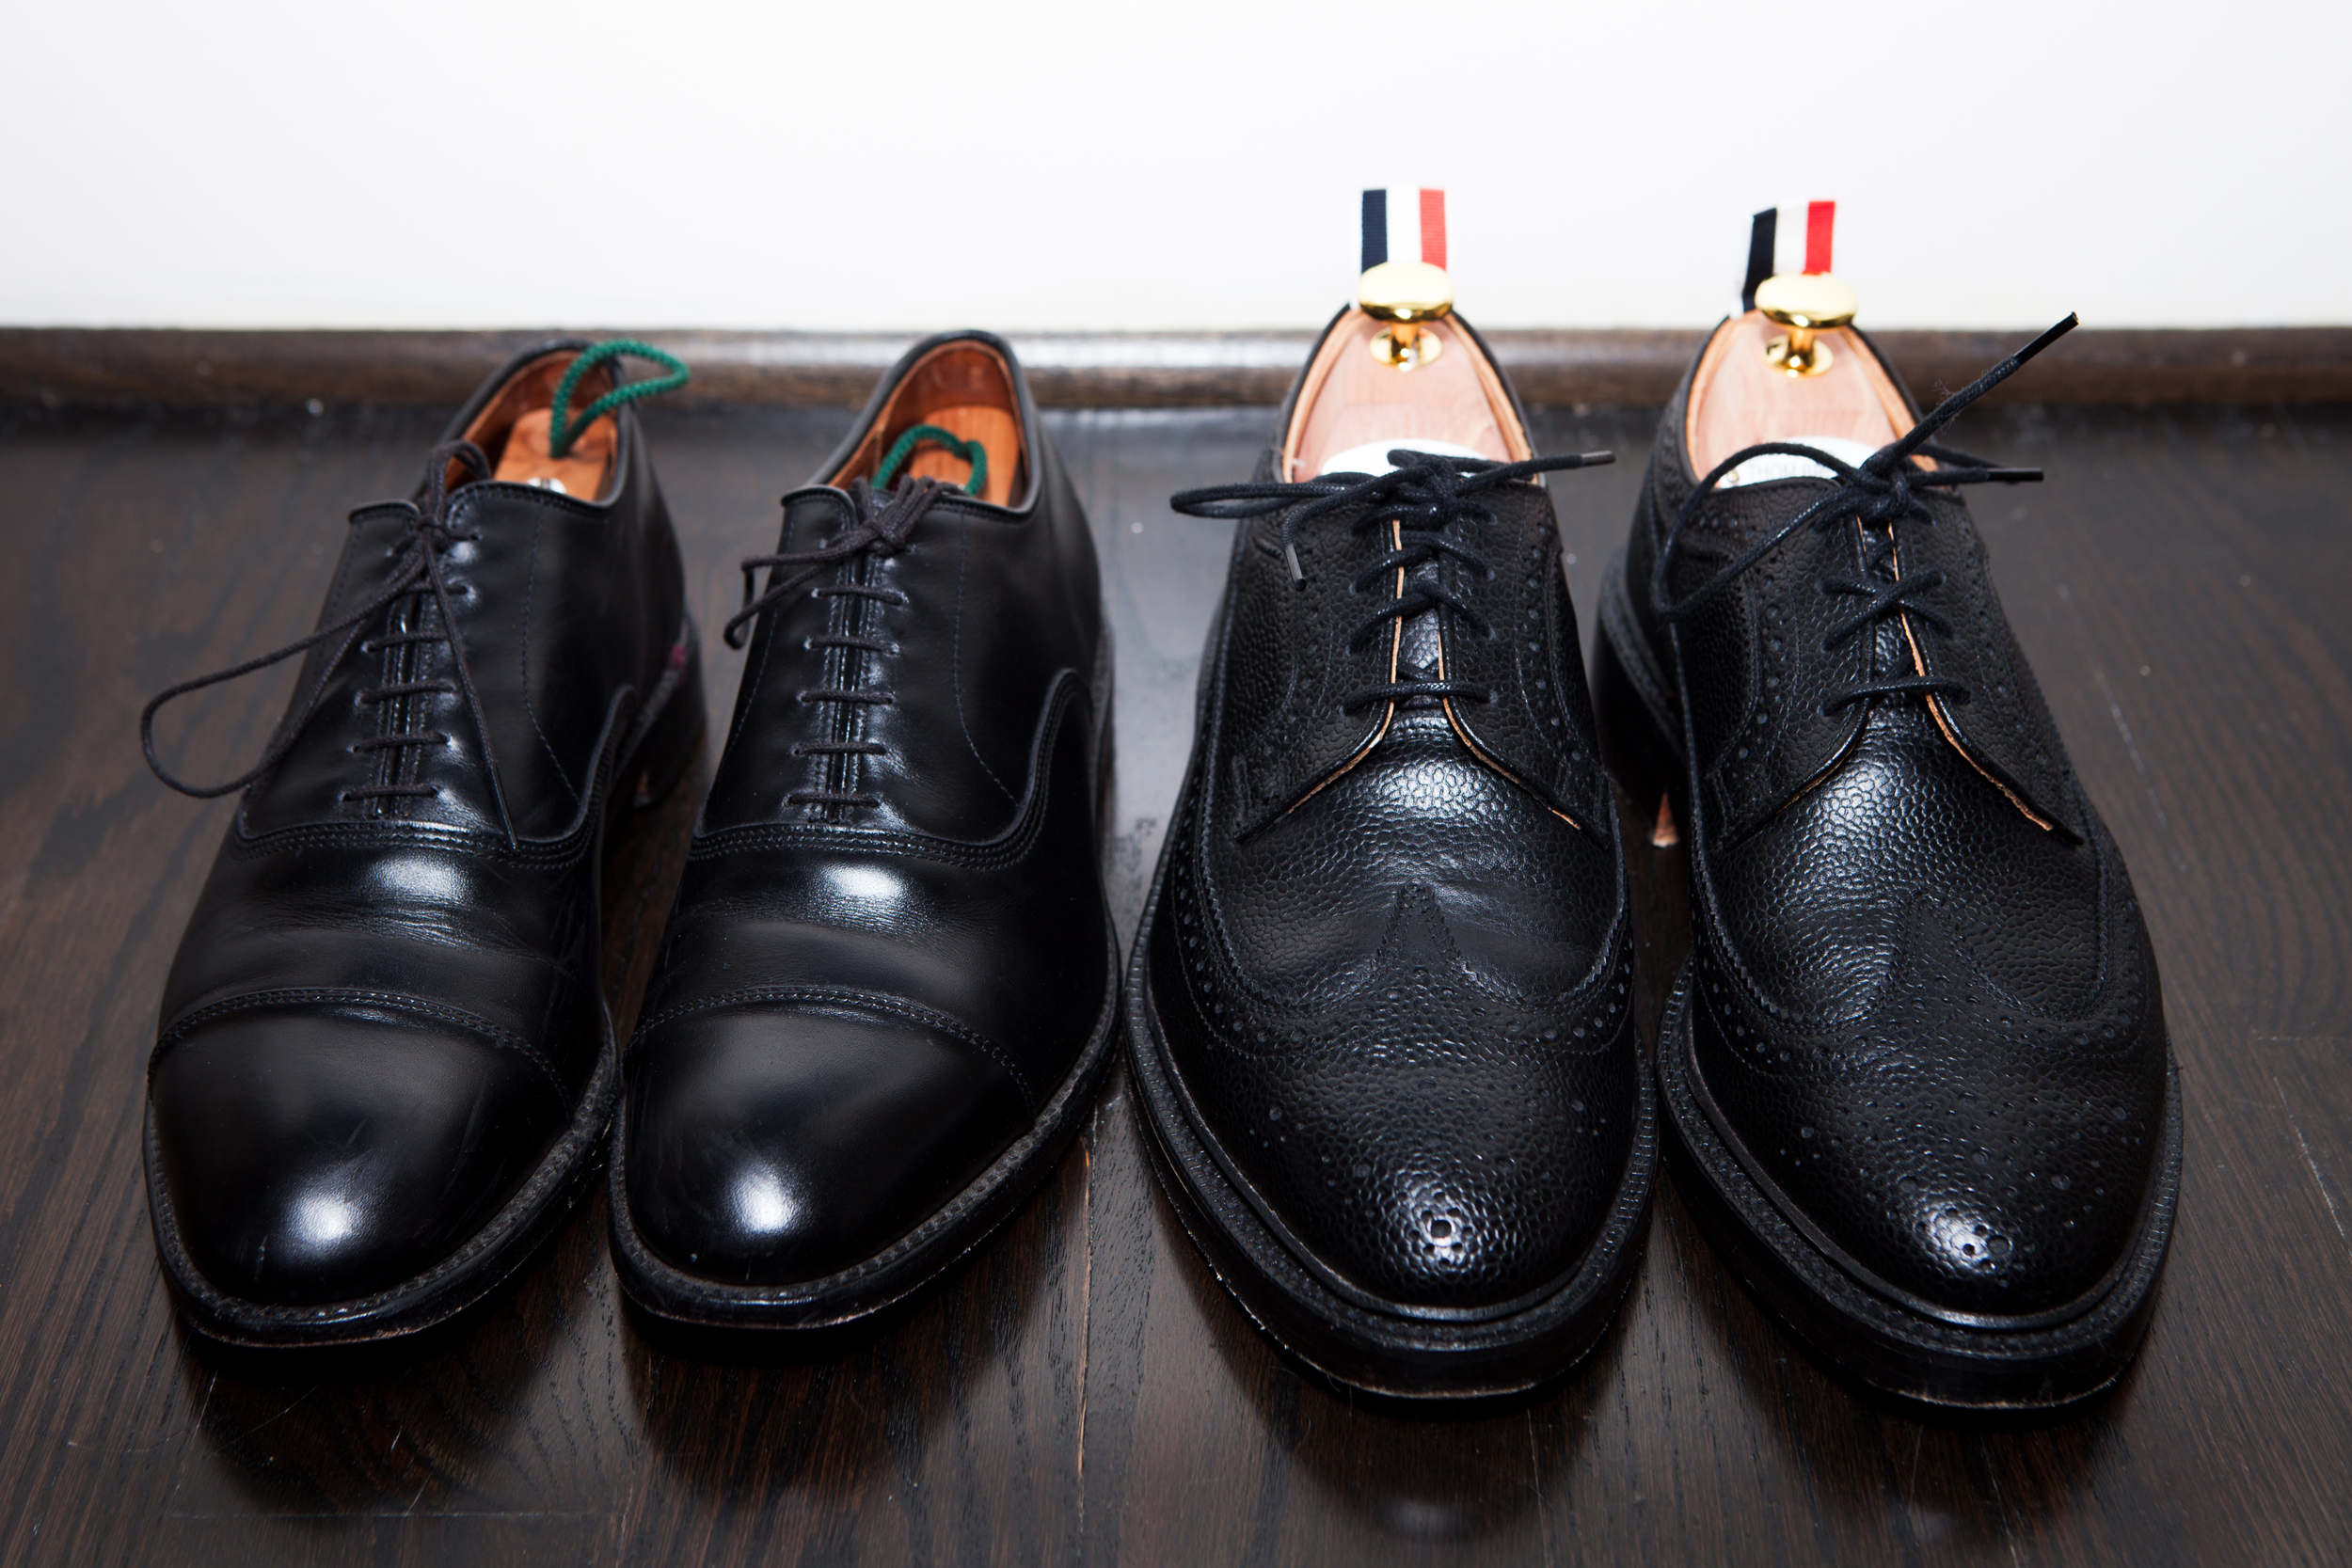 Thom Browne: The Iconic Pull Tab